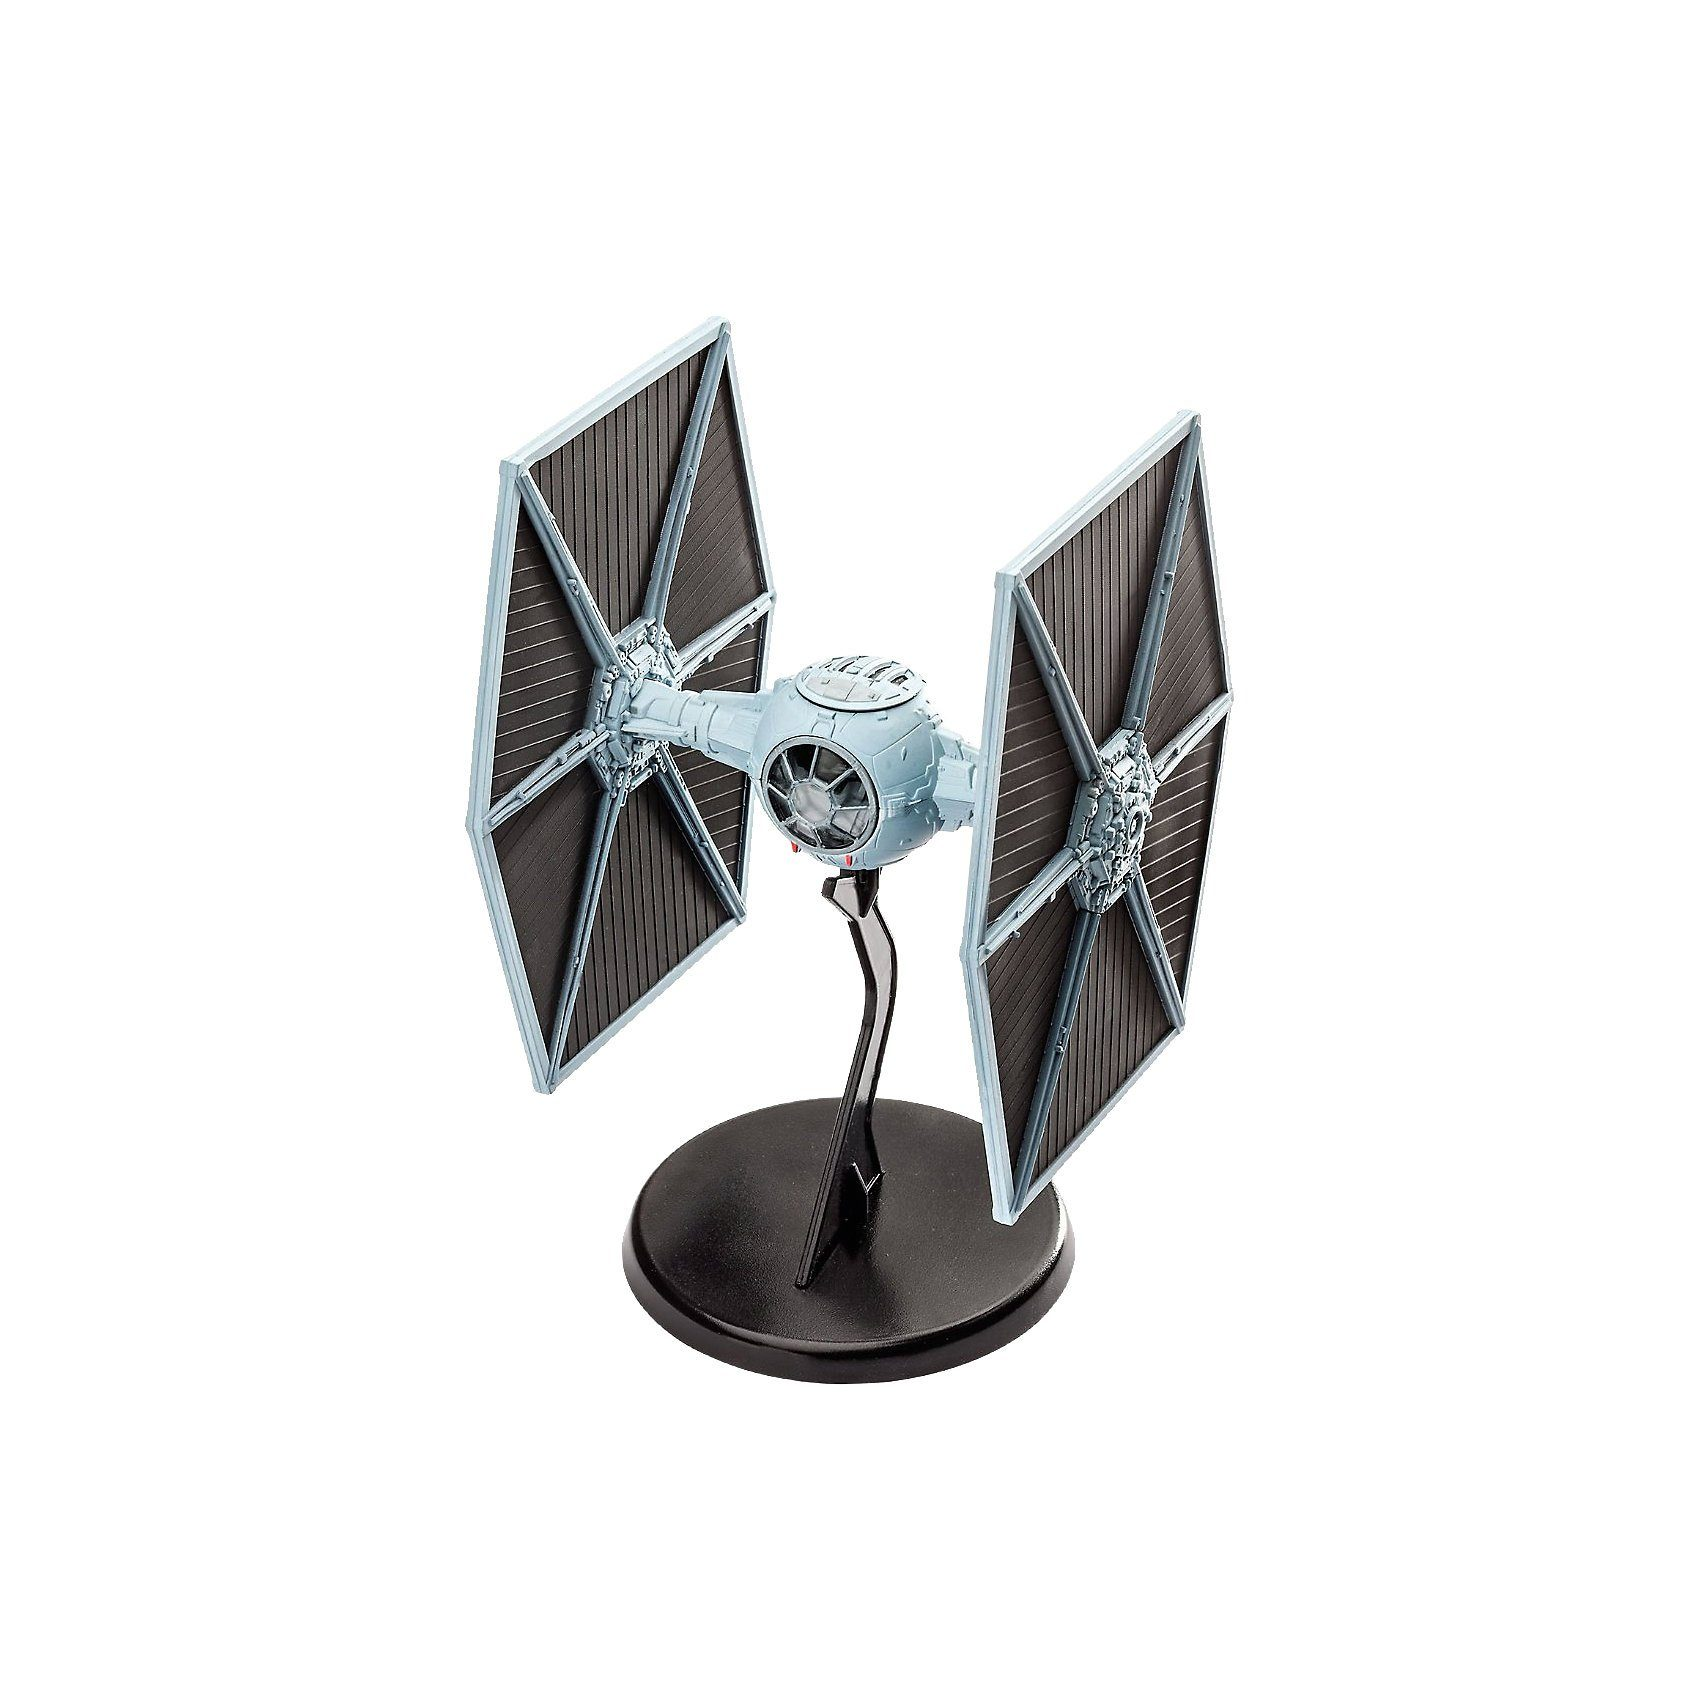 Revell Modellbausatz Star Wars TIE Fighter